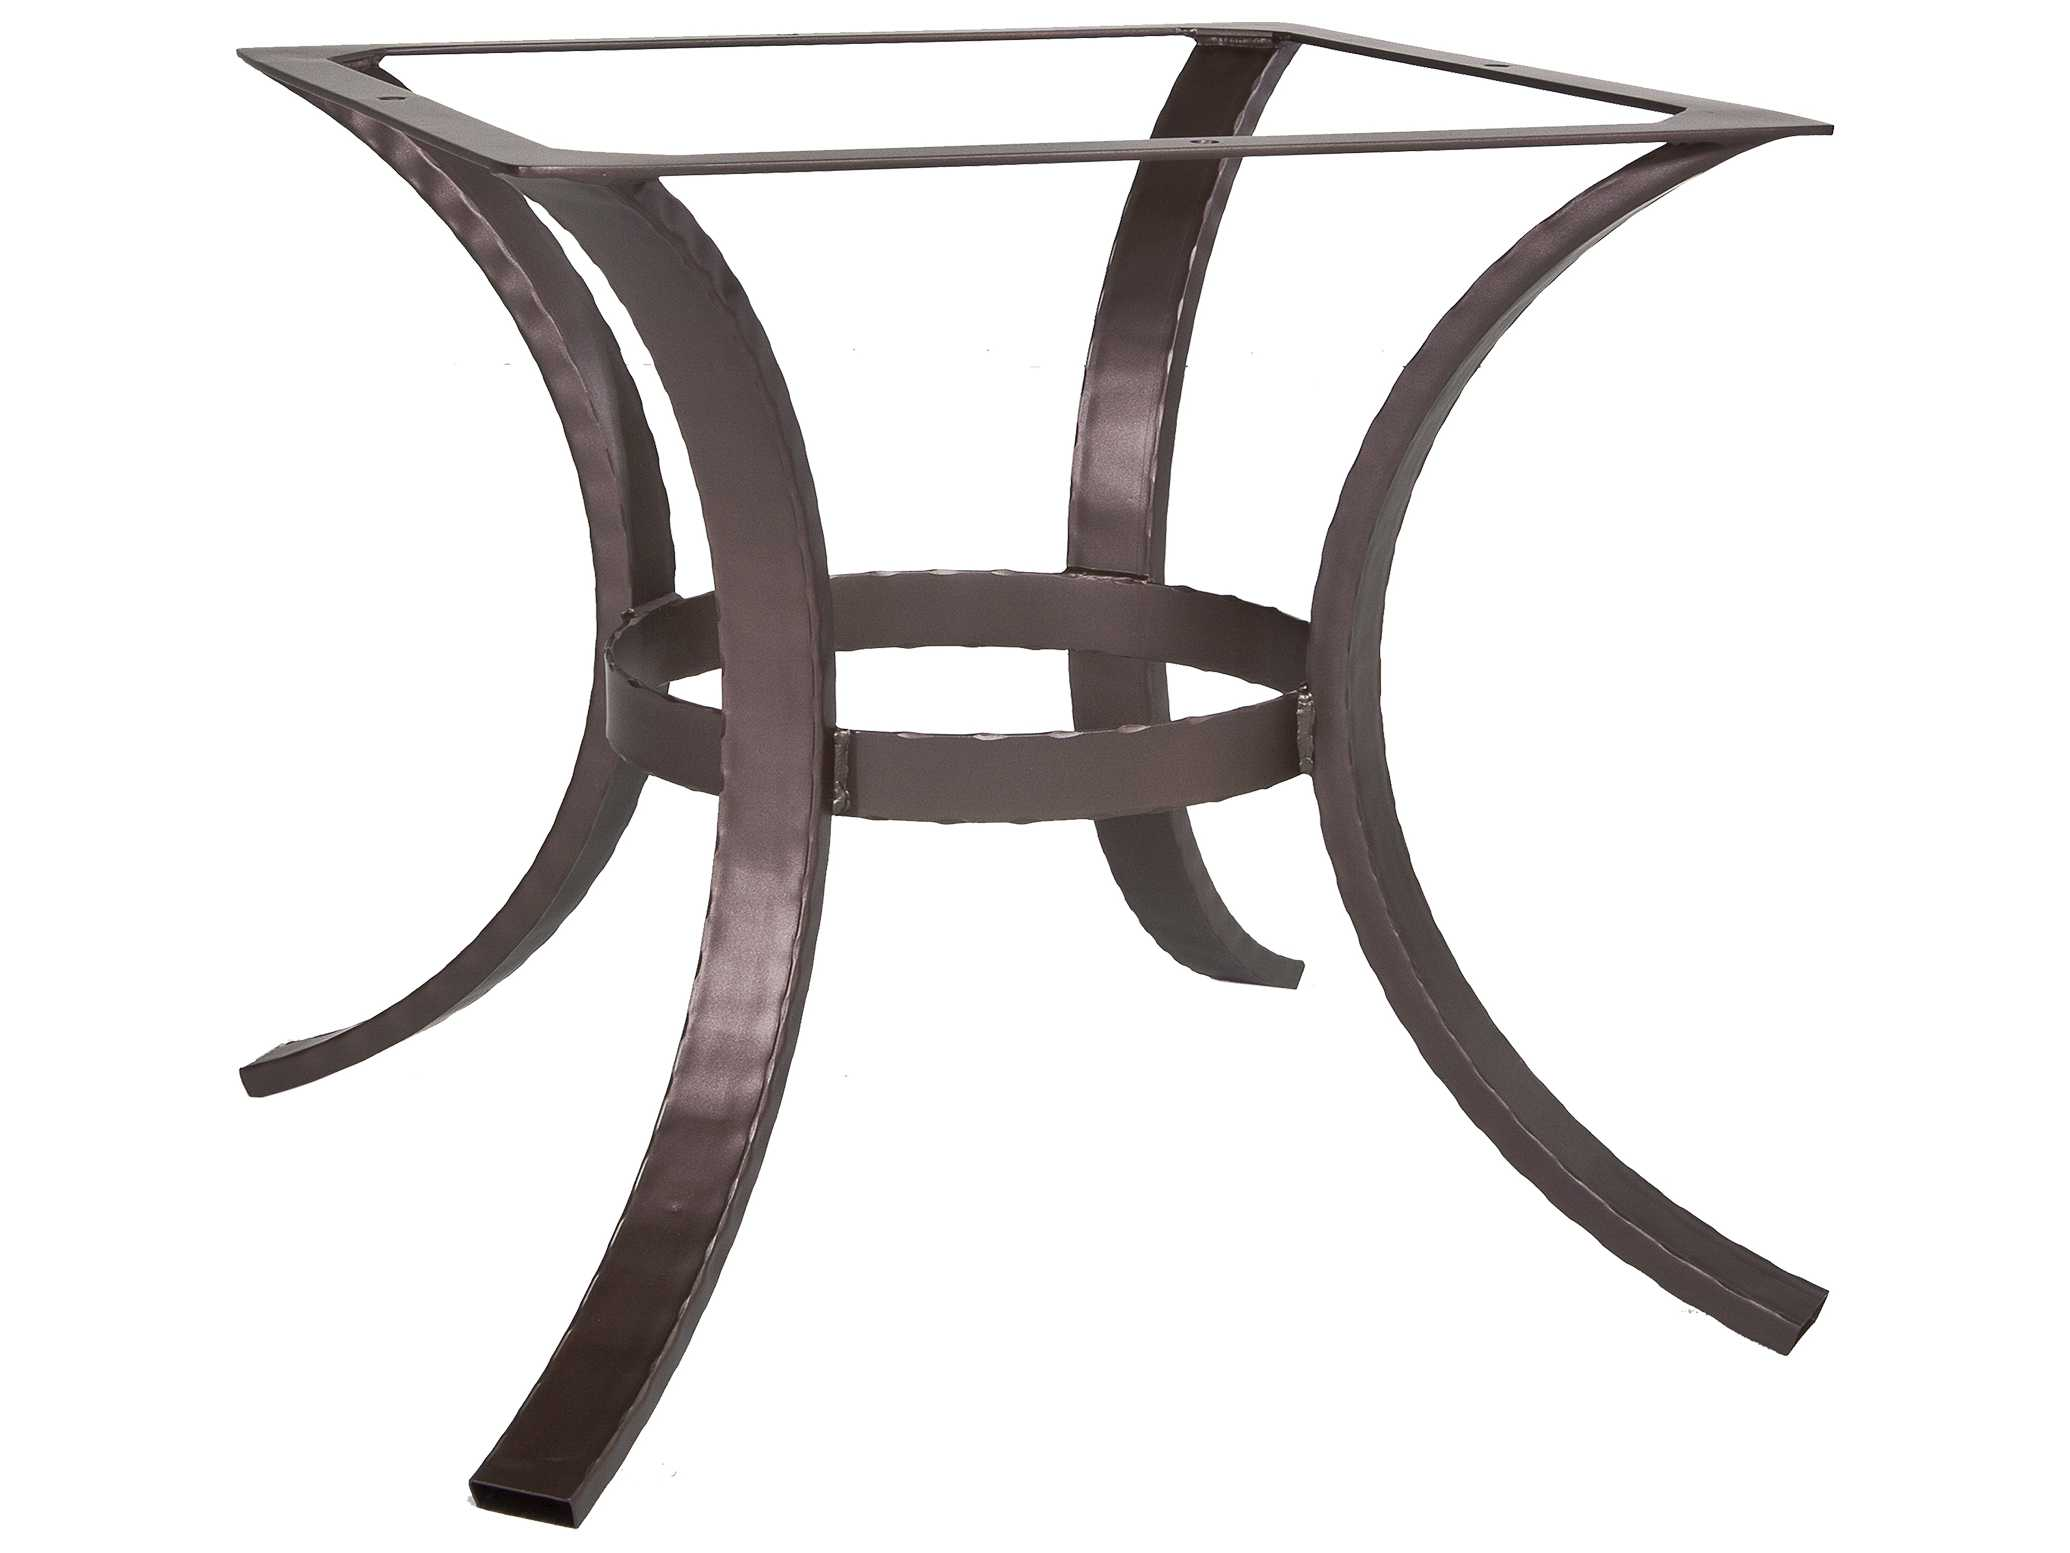 Hammered Wrought Iron 04 Dining Table Base Hammered Iron Tables Bases